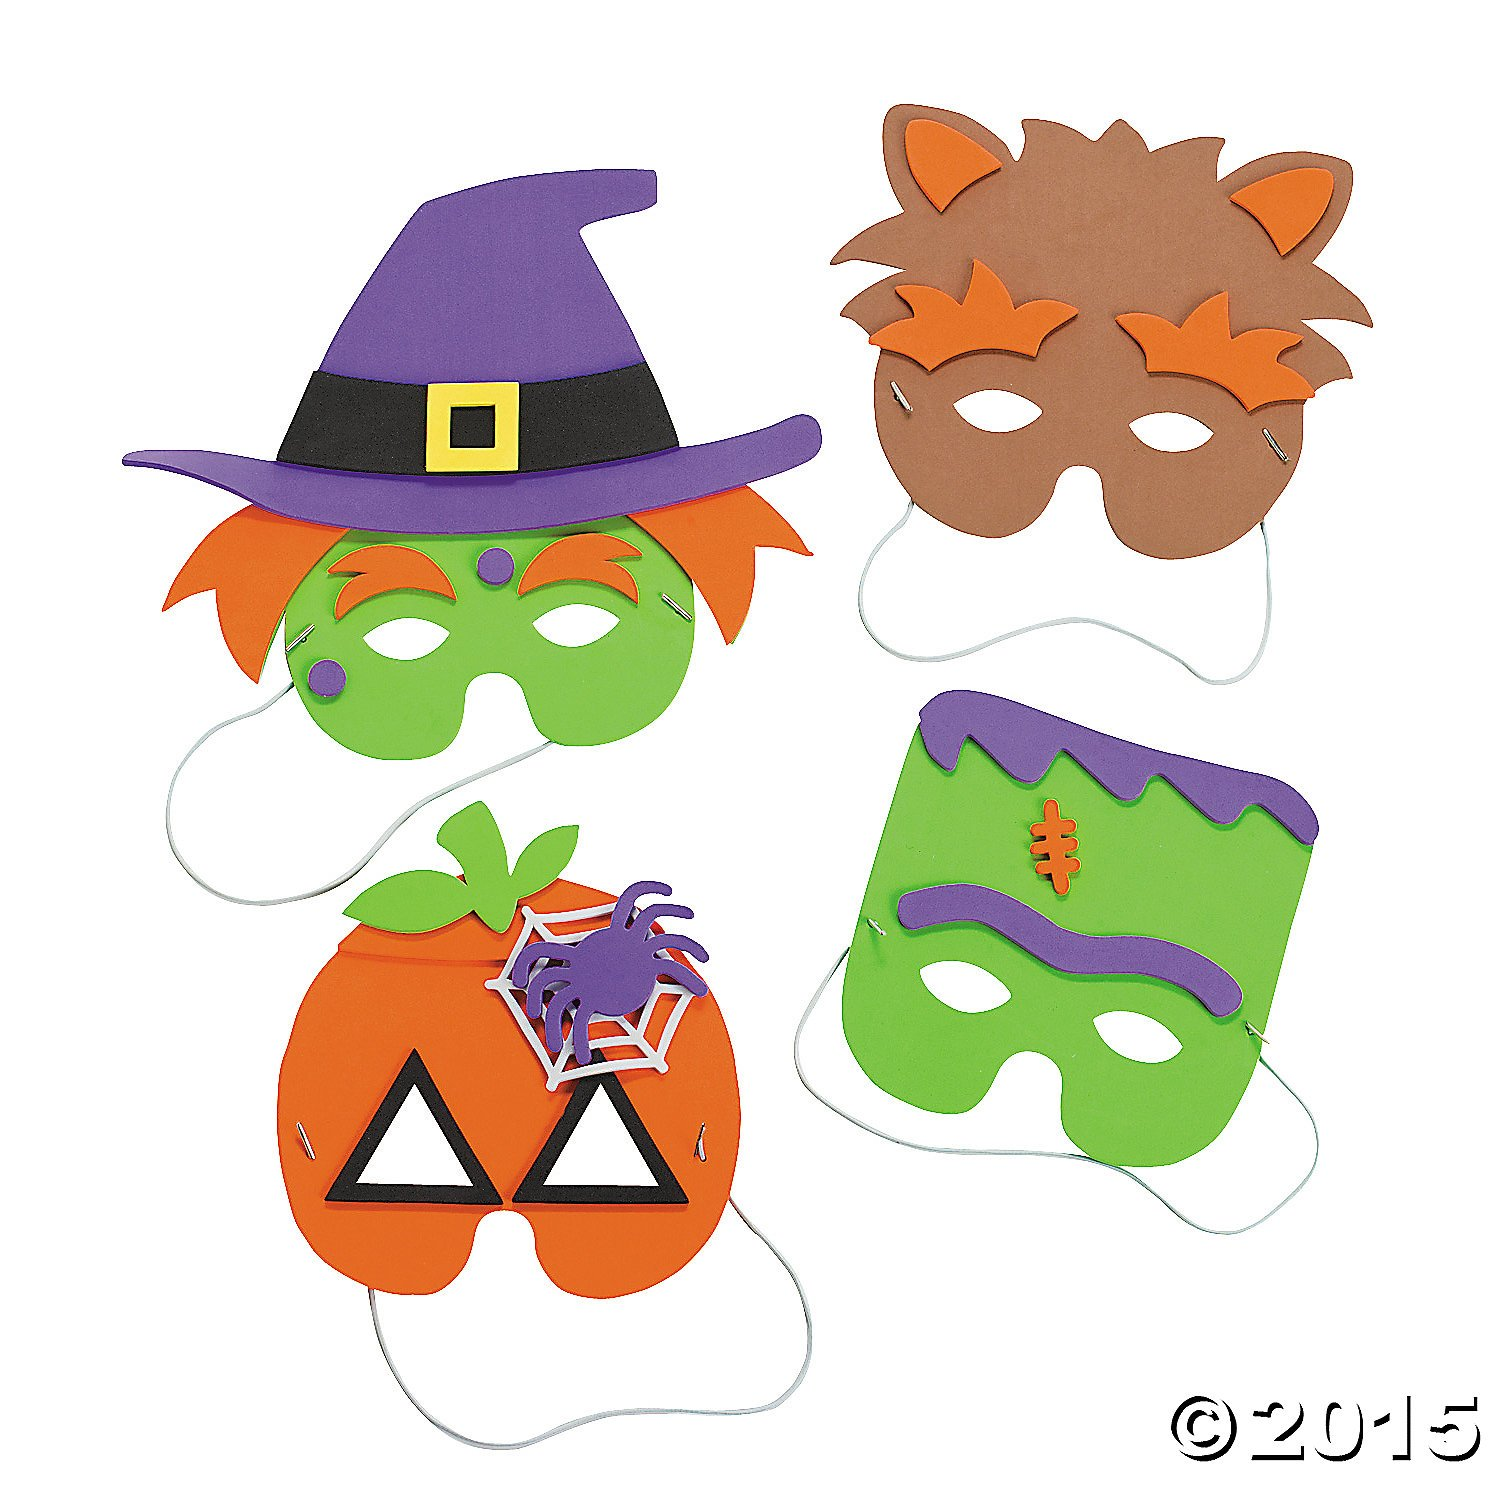 Halloween Mask Craft Kit - Crafts for Kids and Hats Masks, 1 dozen Assorted Masks